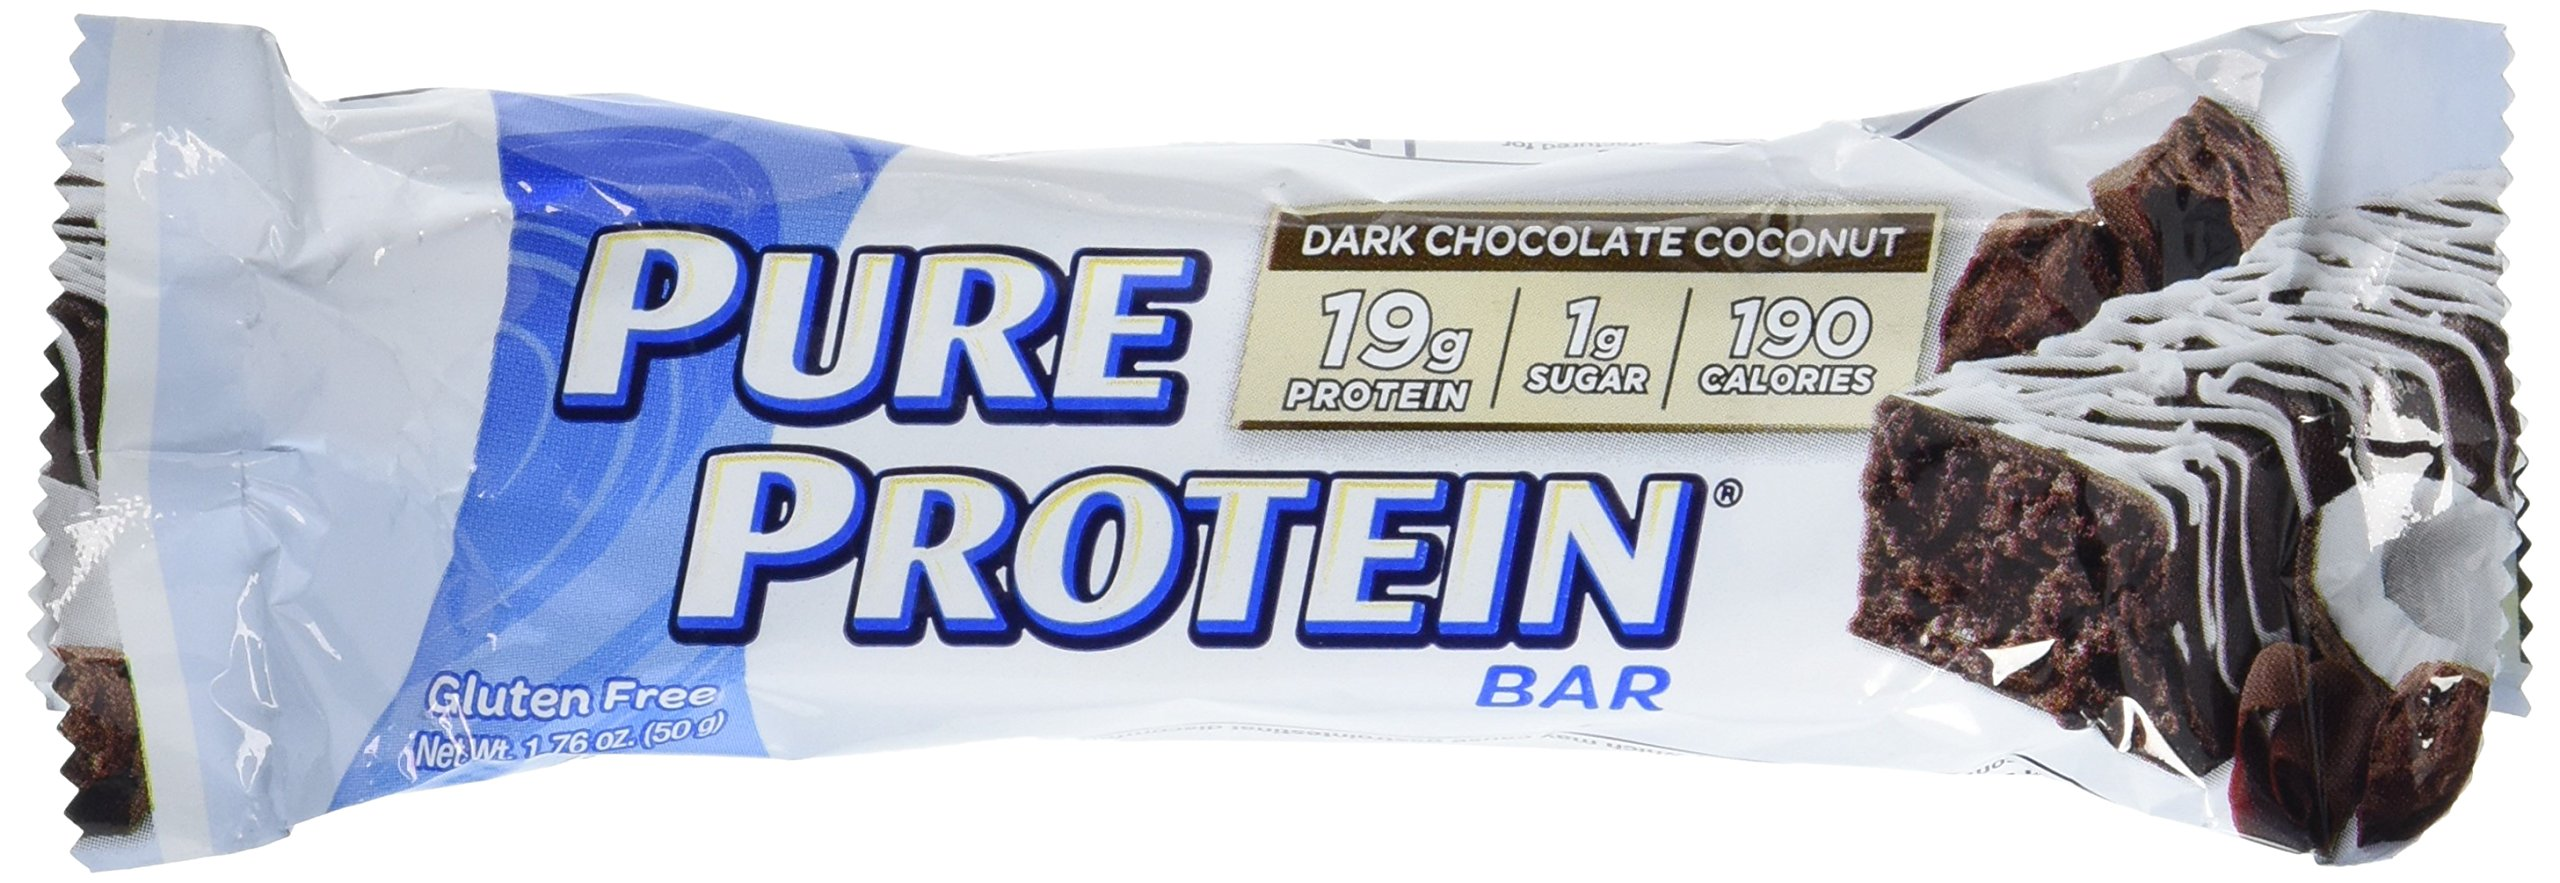 Pure Protein High Protein Bar Dark Chocolate Coconut 1.76-Ounce Bar (Pack of 12), Protein Bars, 19 Grams of Protein, Gluten Free